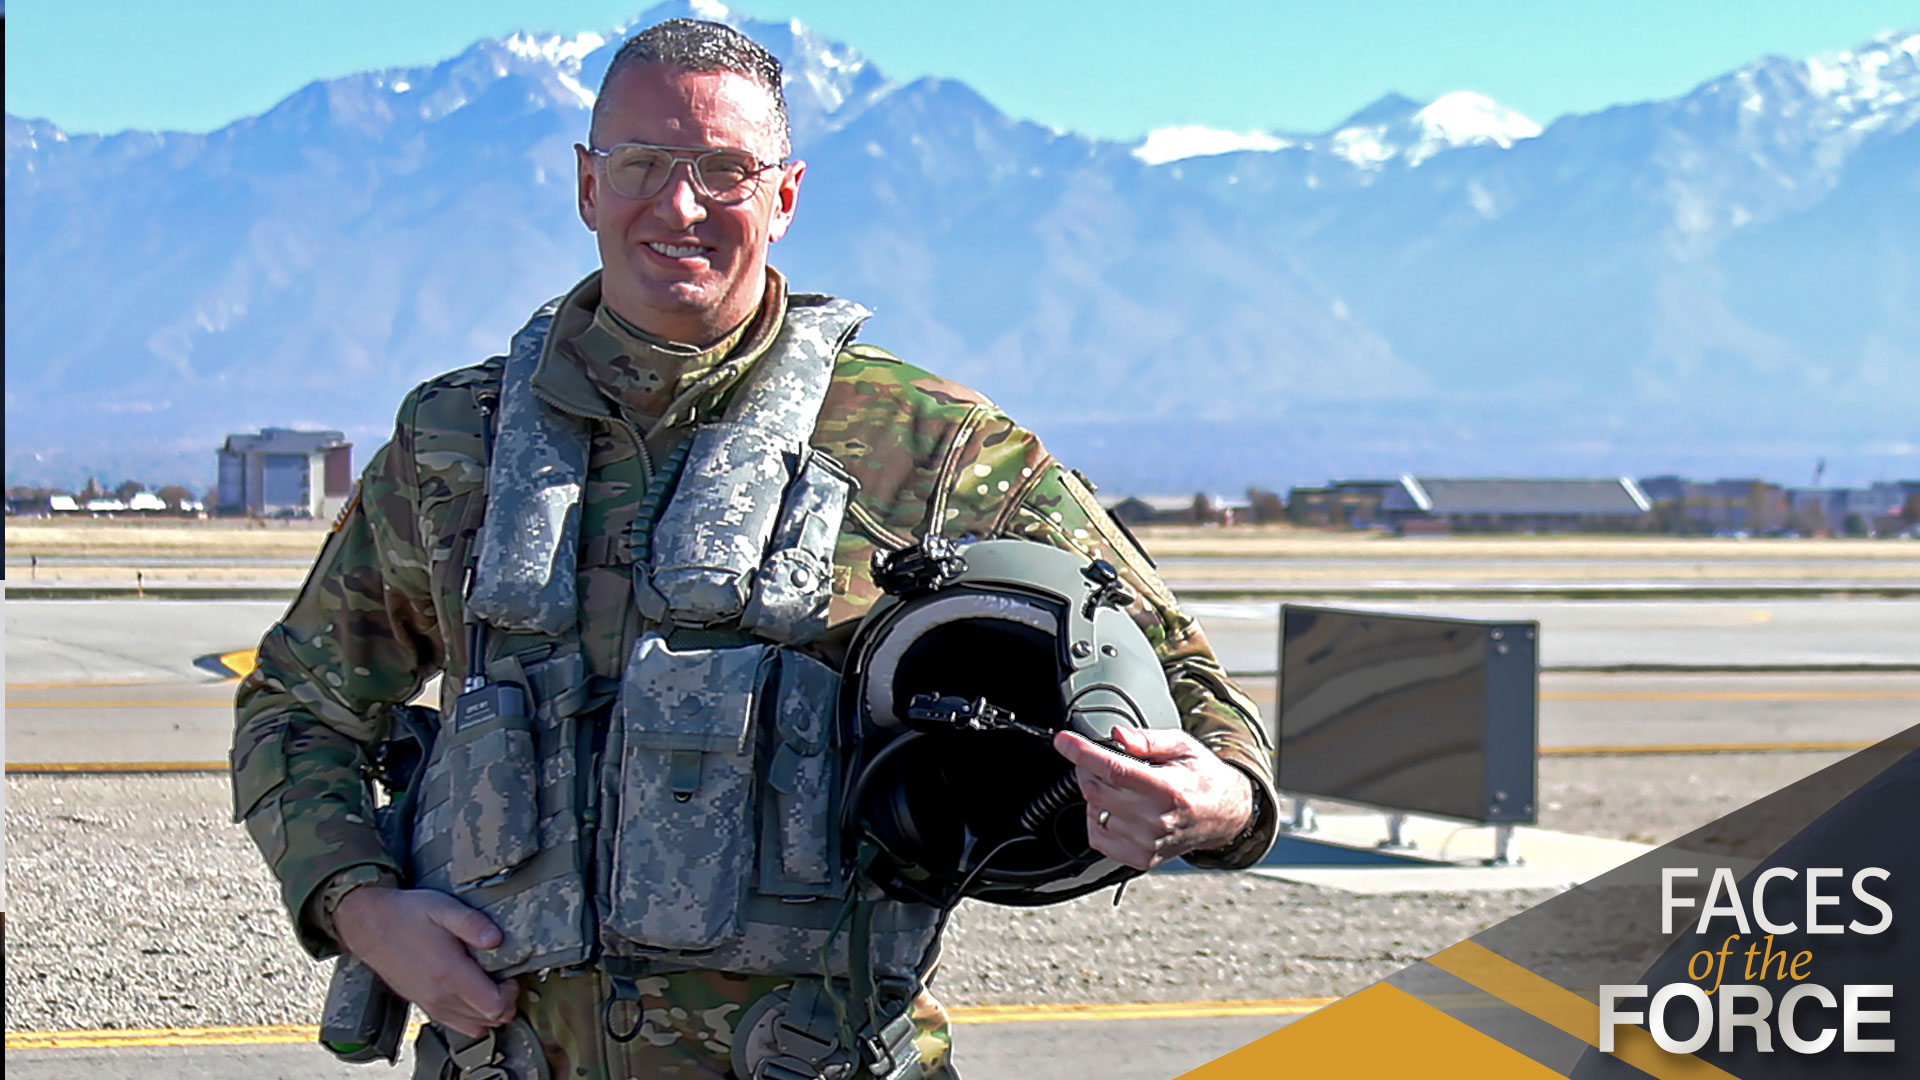 FACES OF THE FORCE: COL. STEVEN R. BRADDOM